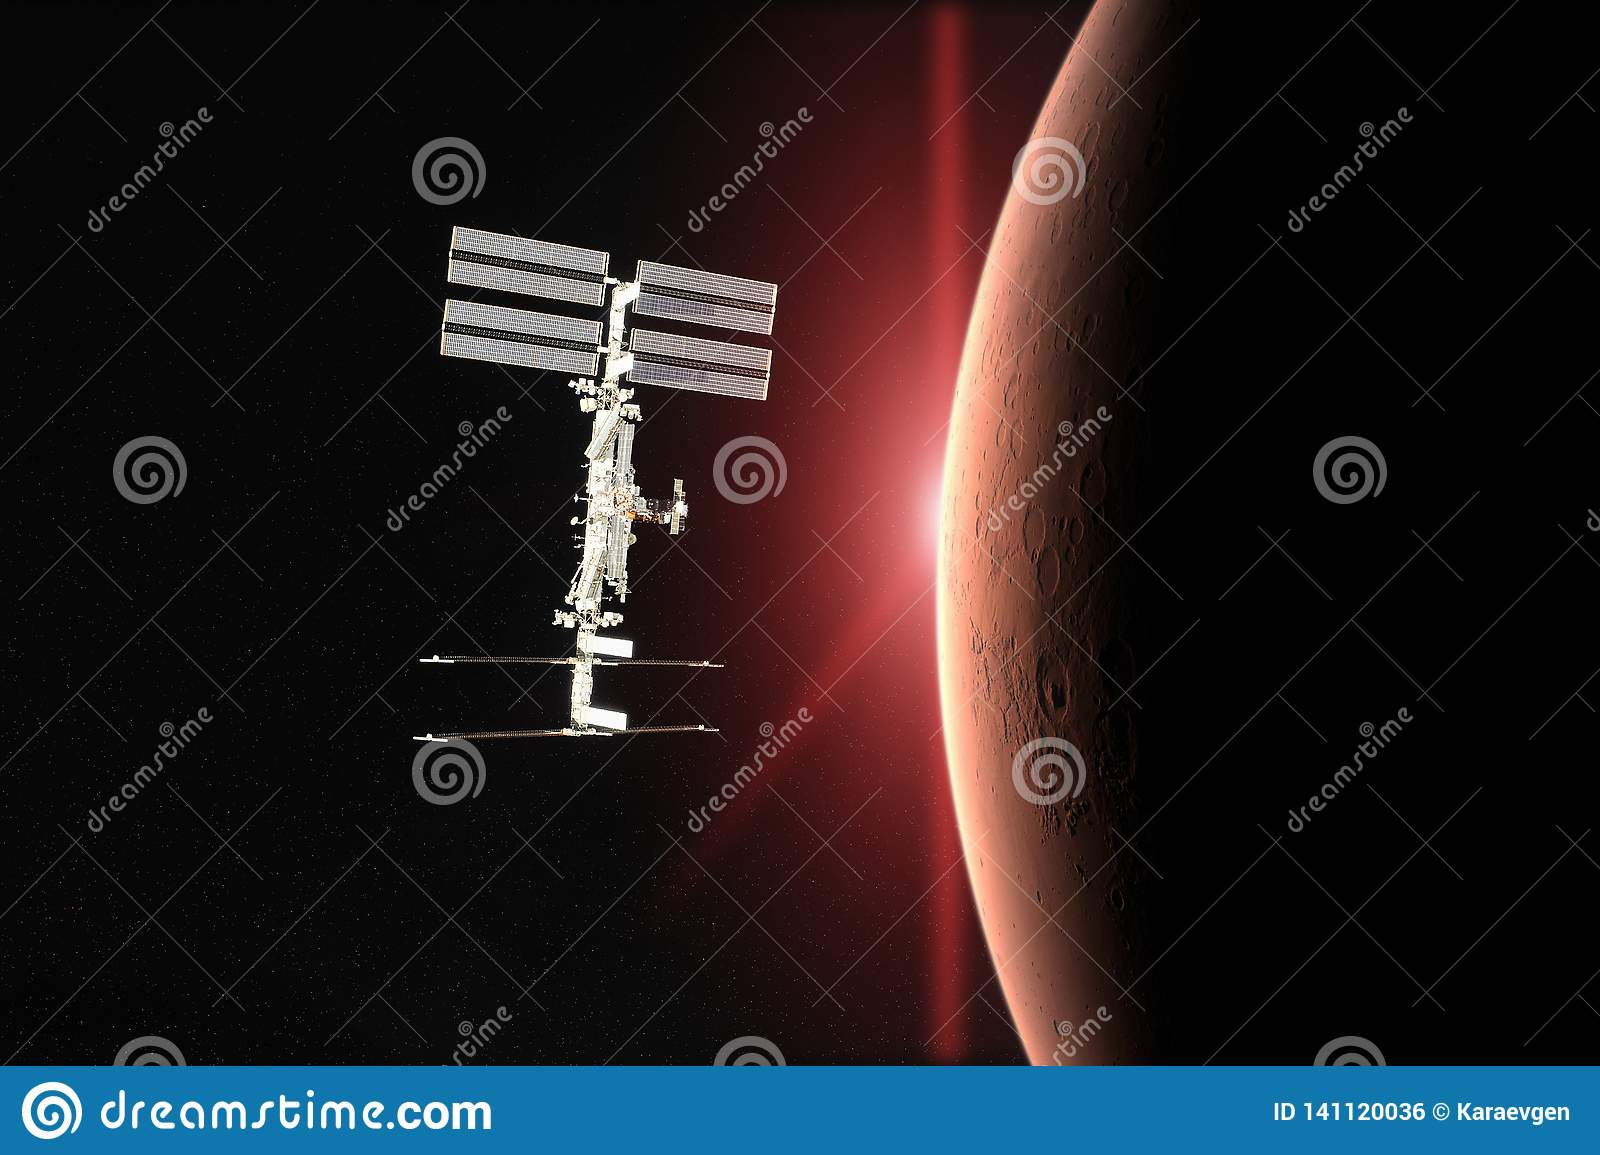 Red planet Mars. Spacecraft launch into space. Elements of this image furnished by NASA